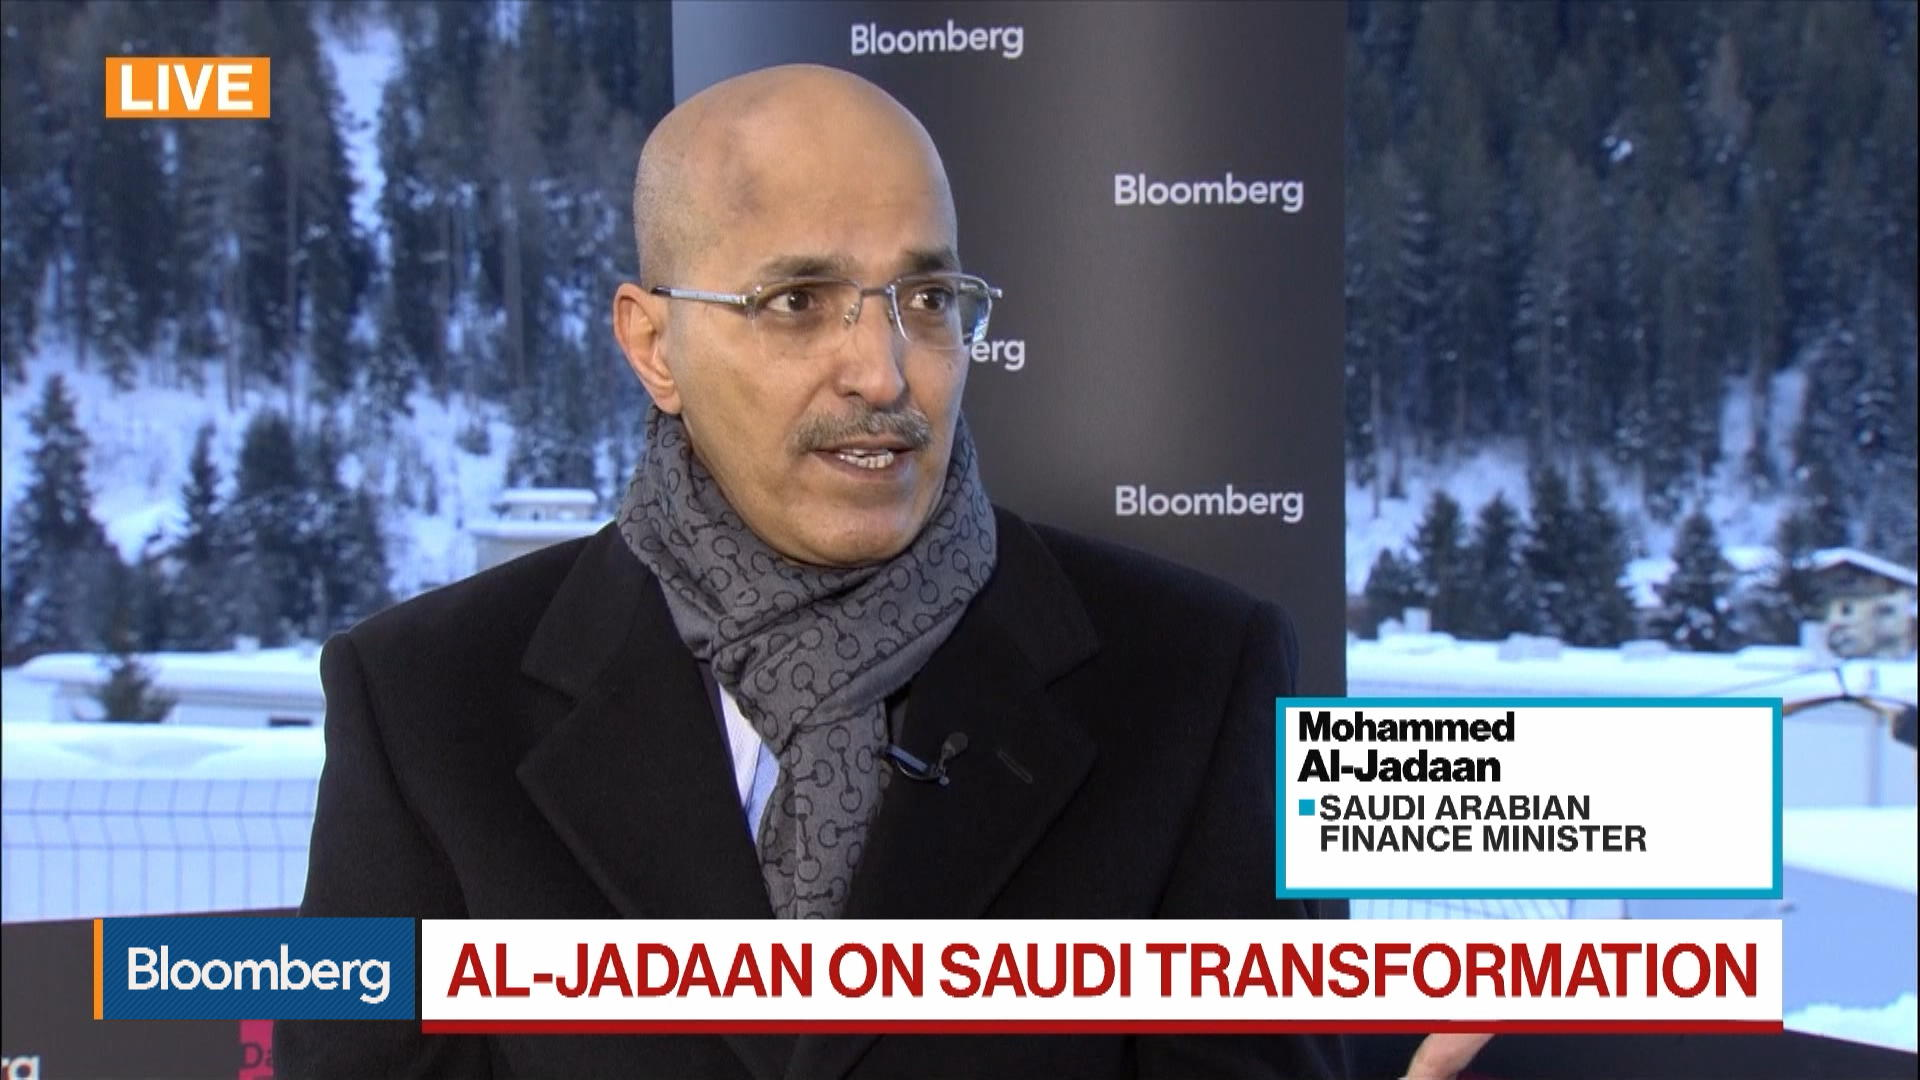 Davos: Aramco International Listing 'Still on the Cards,' Saudi Arabia Finance Minister Says